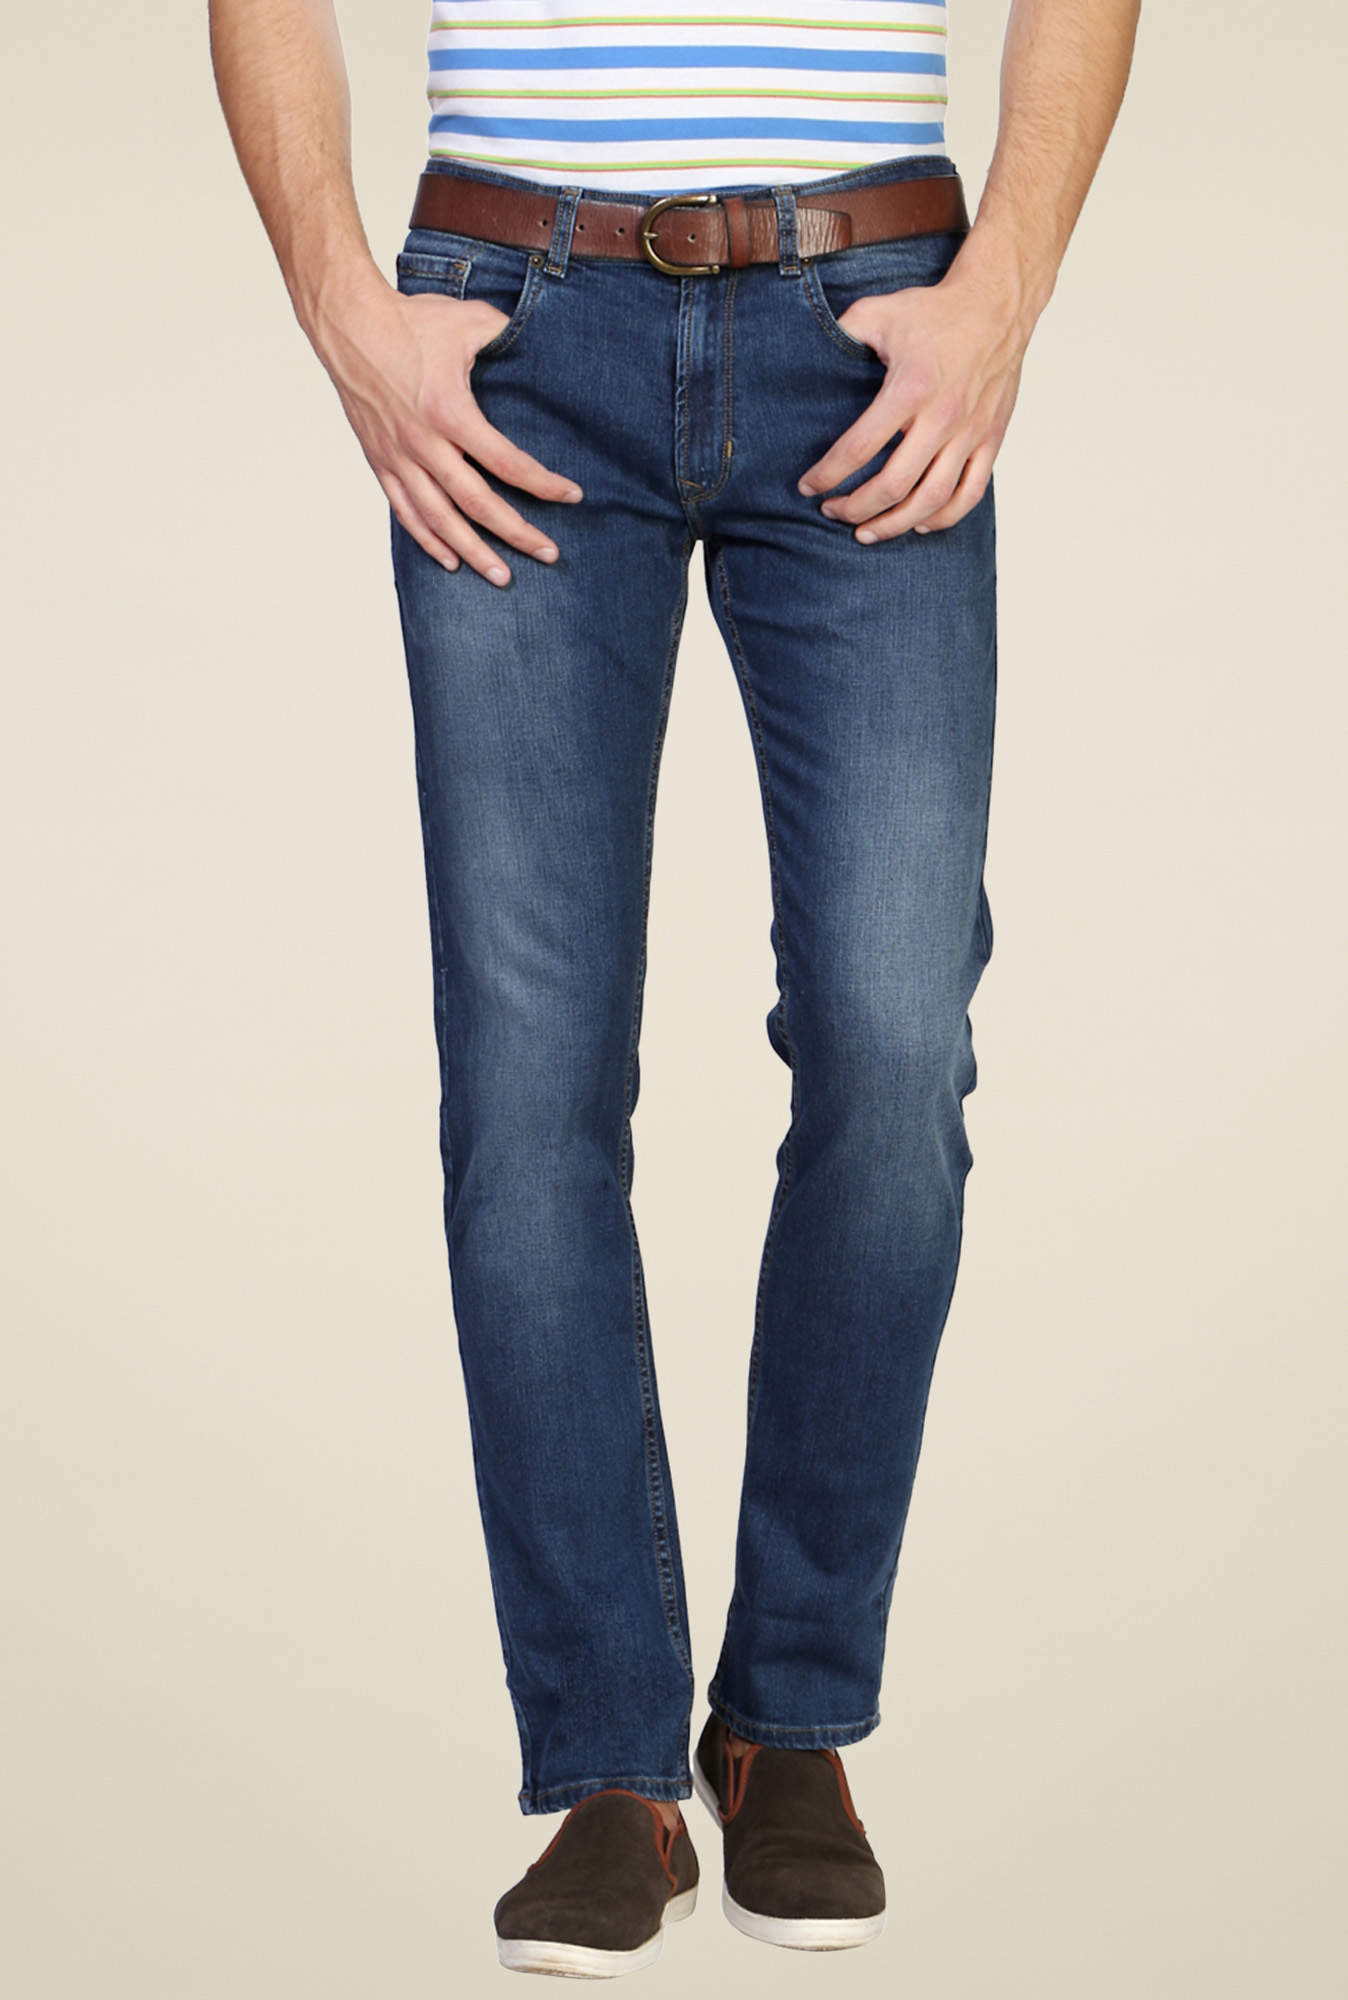 Peter England Blue Slim Fit Jeans